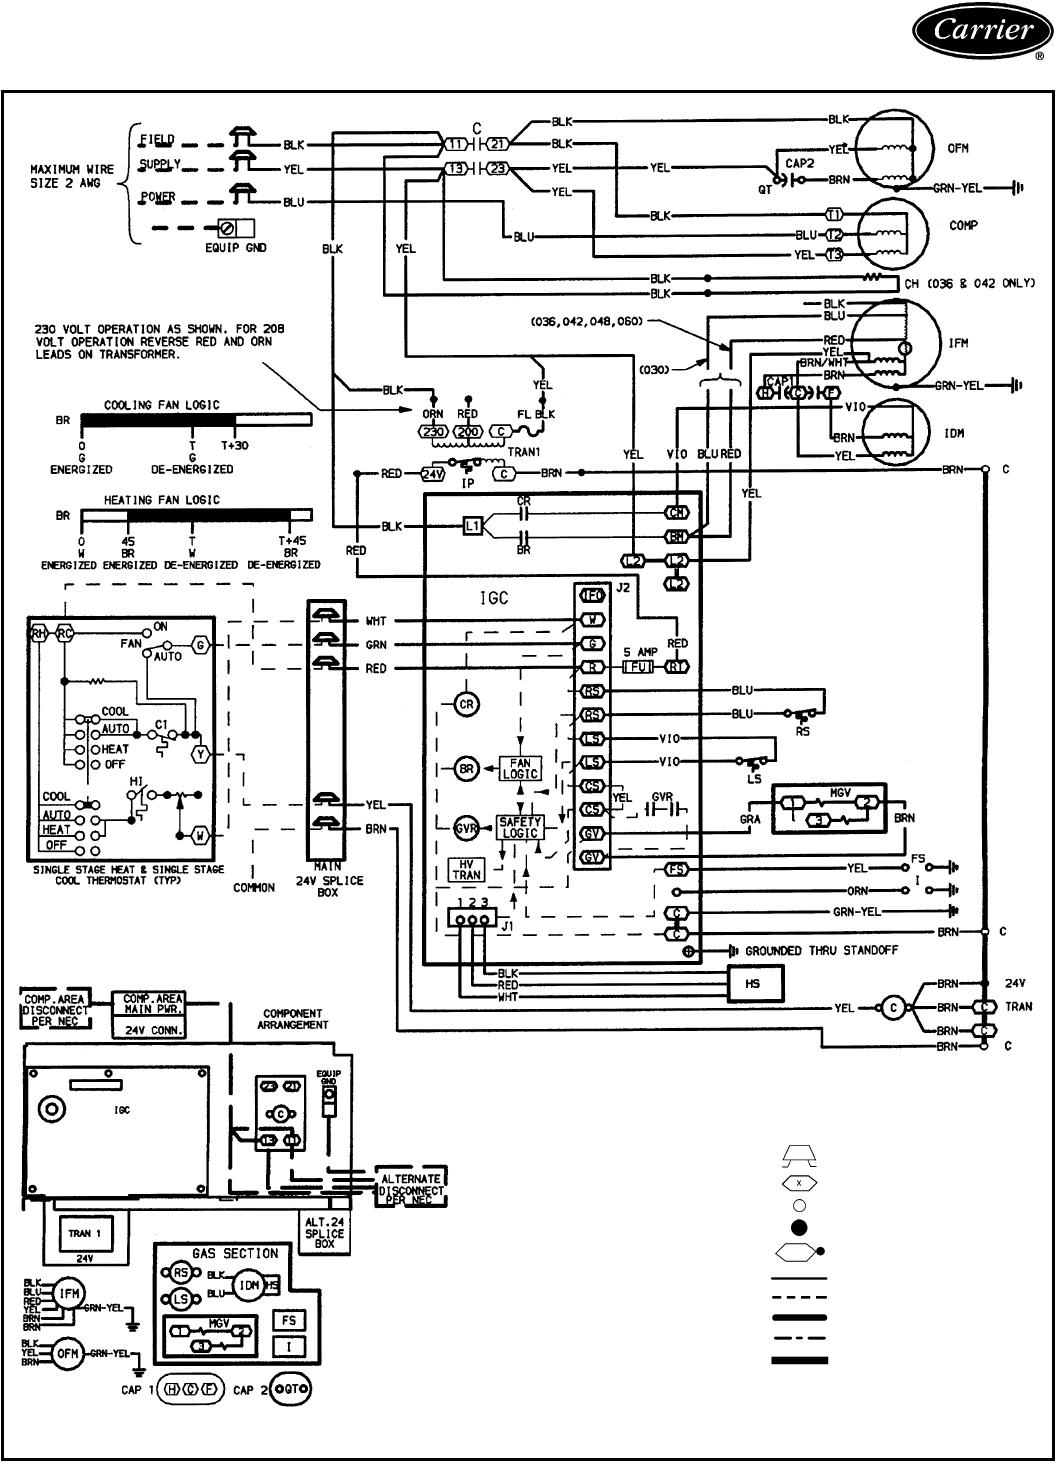 c plan wiring diagram with pump overrun sony cdx ra700 carrier 48ss 48ss030 060 208 230 3 60